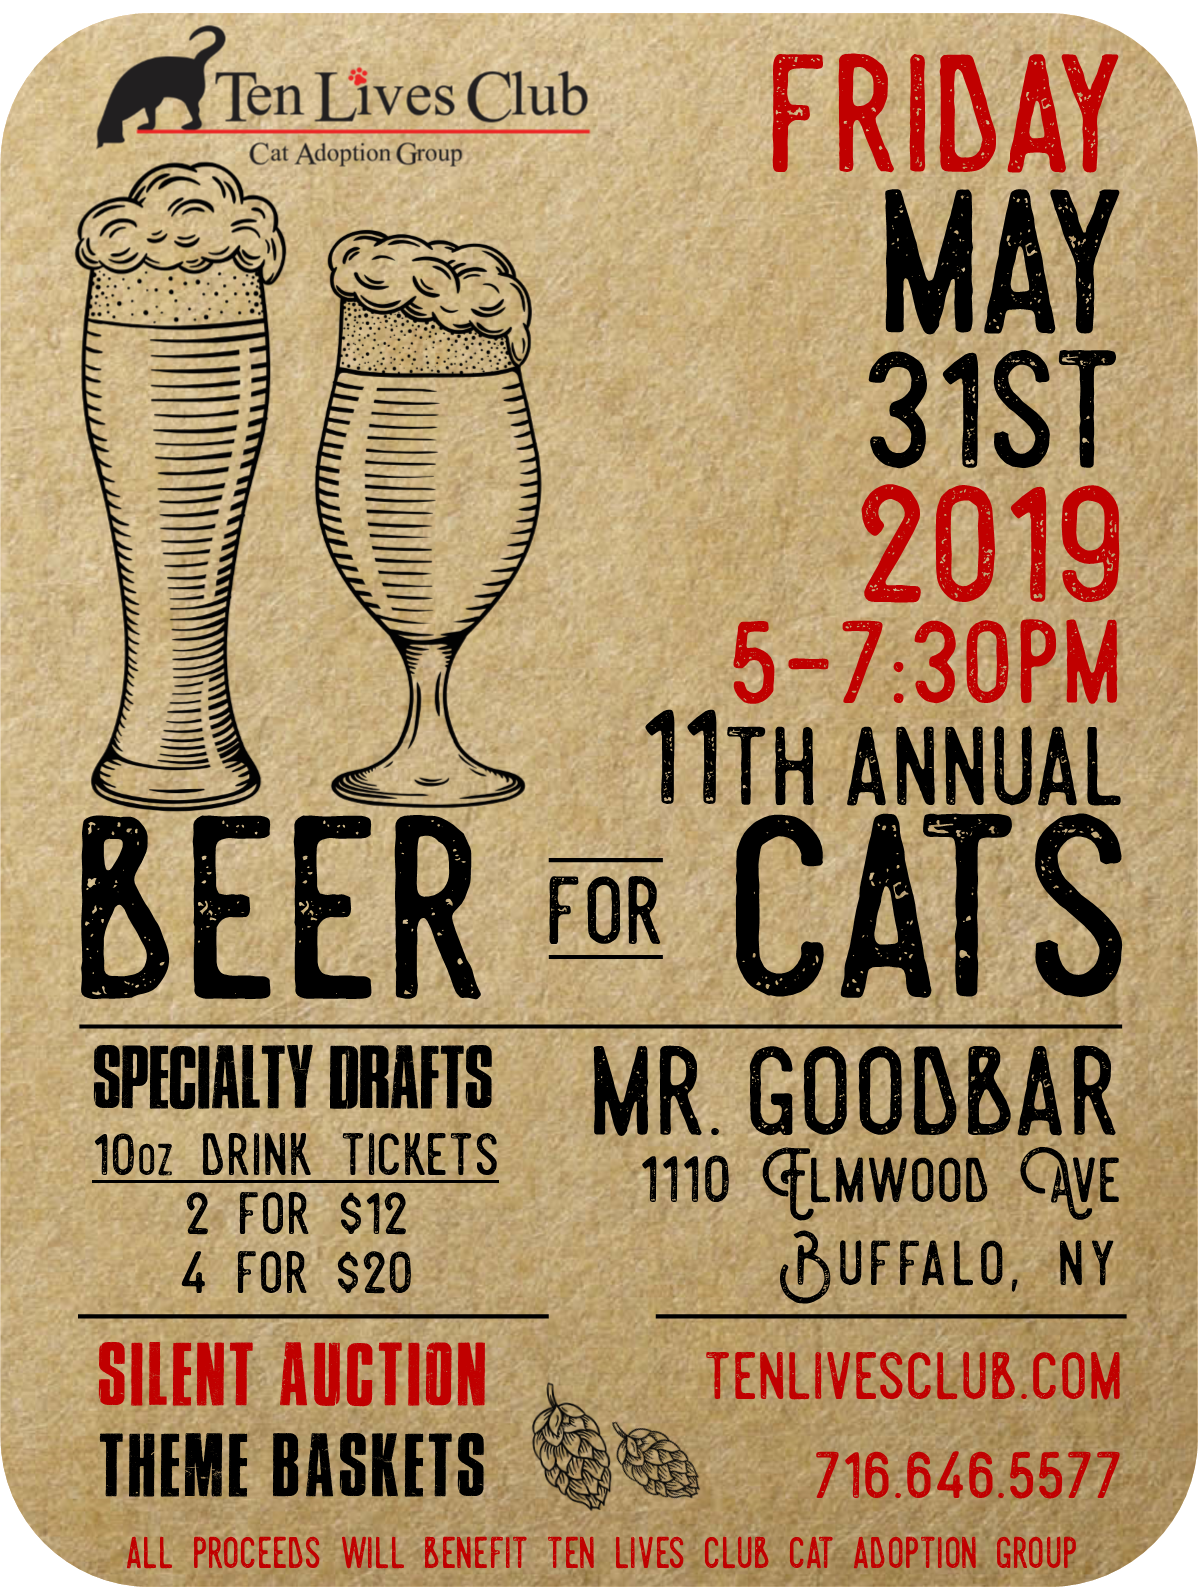 Beer for Cats Flyer.png